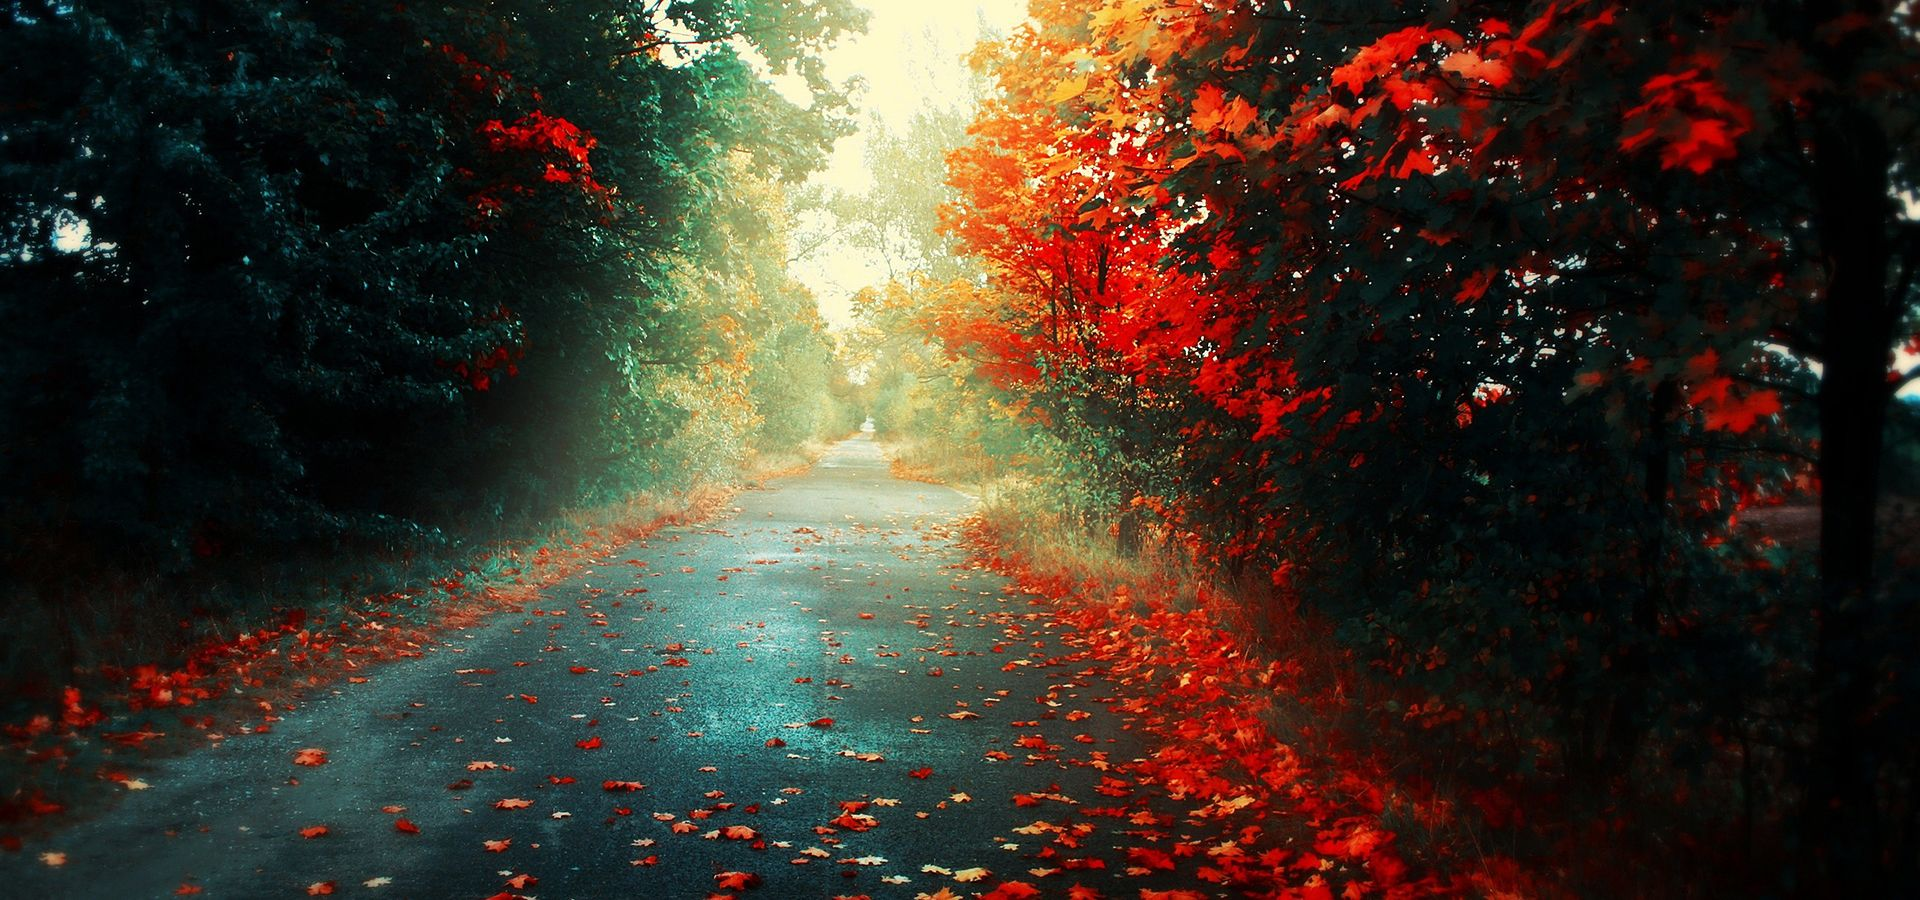 Hd Autumn Street Wallpaper Facebook Cover Images Nature Photography Hd Wallpaper